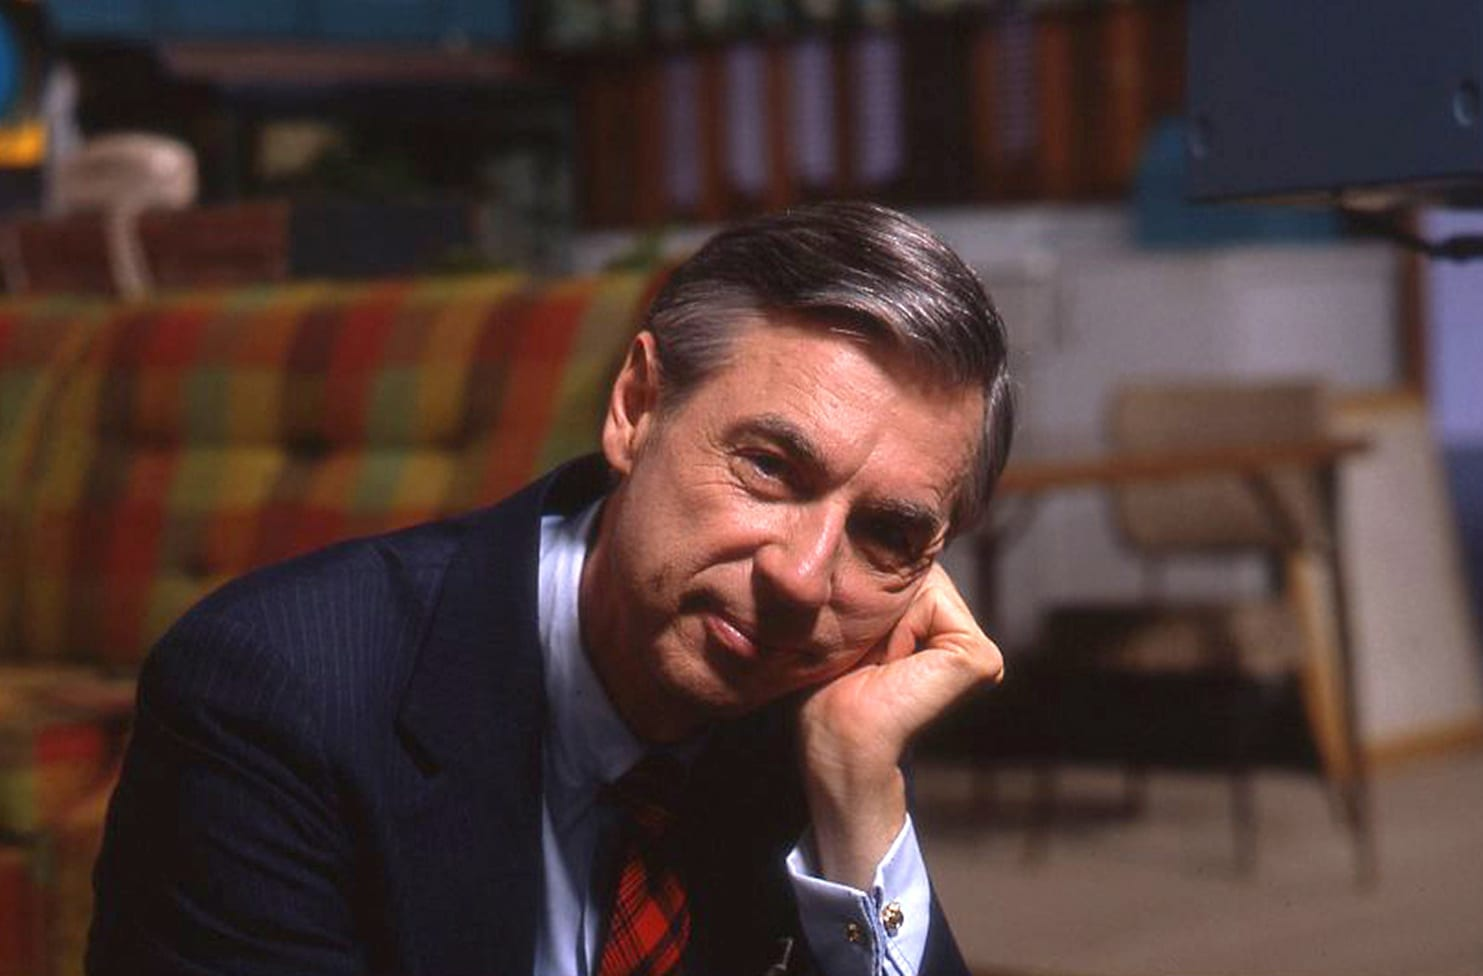 Celebrate the late Fred Rogers' 90th birthday by watching the official trailer for 'Won't You Be My Neighbor?'